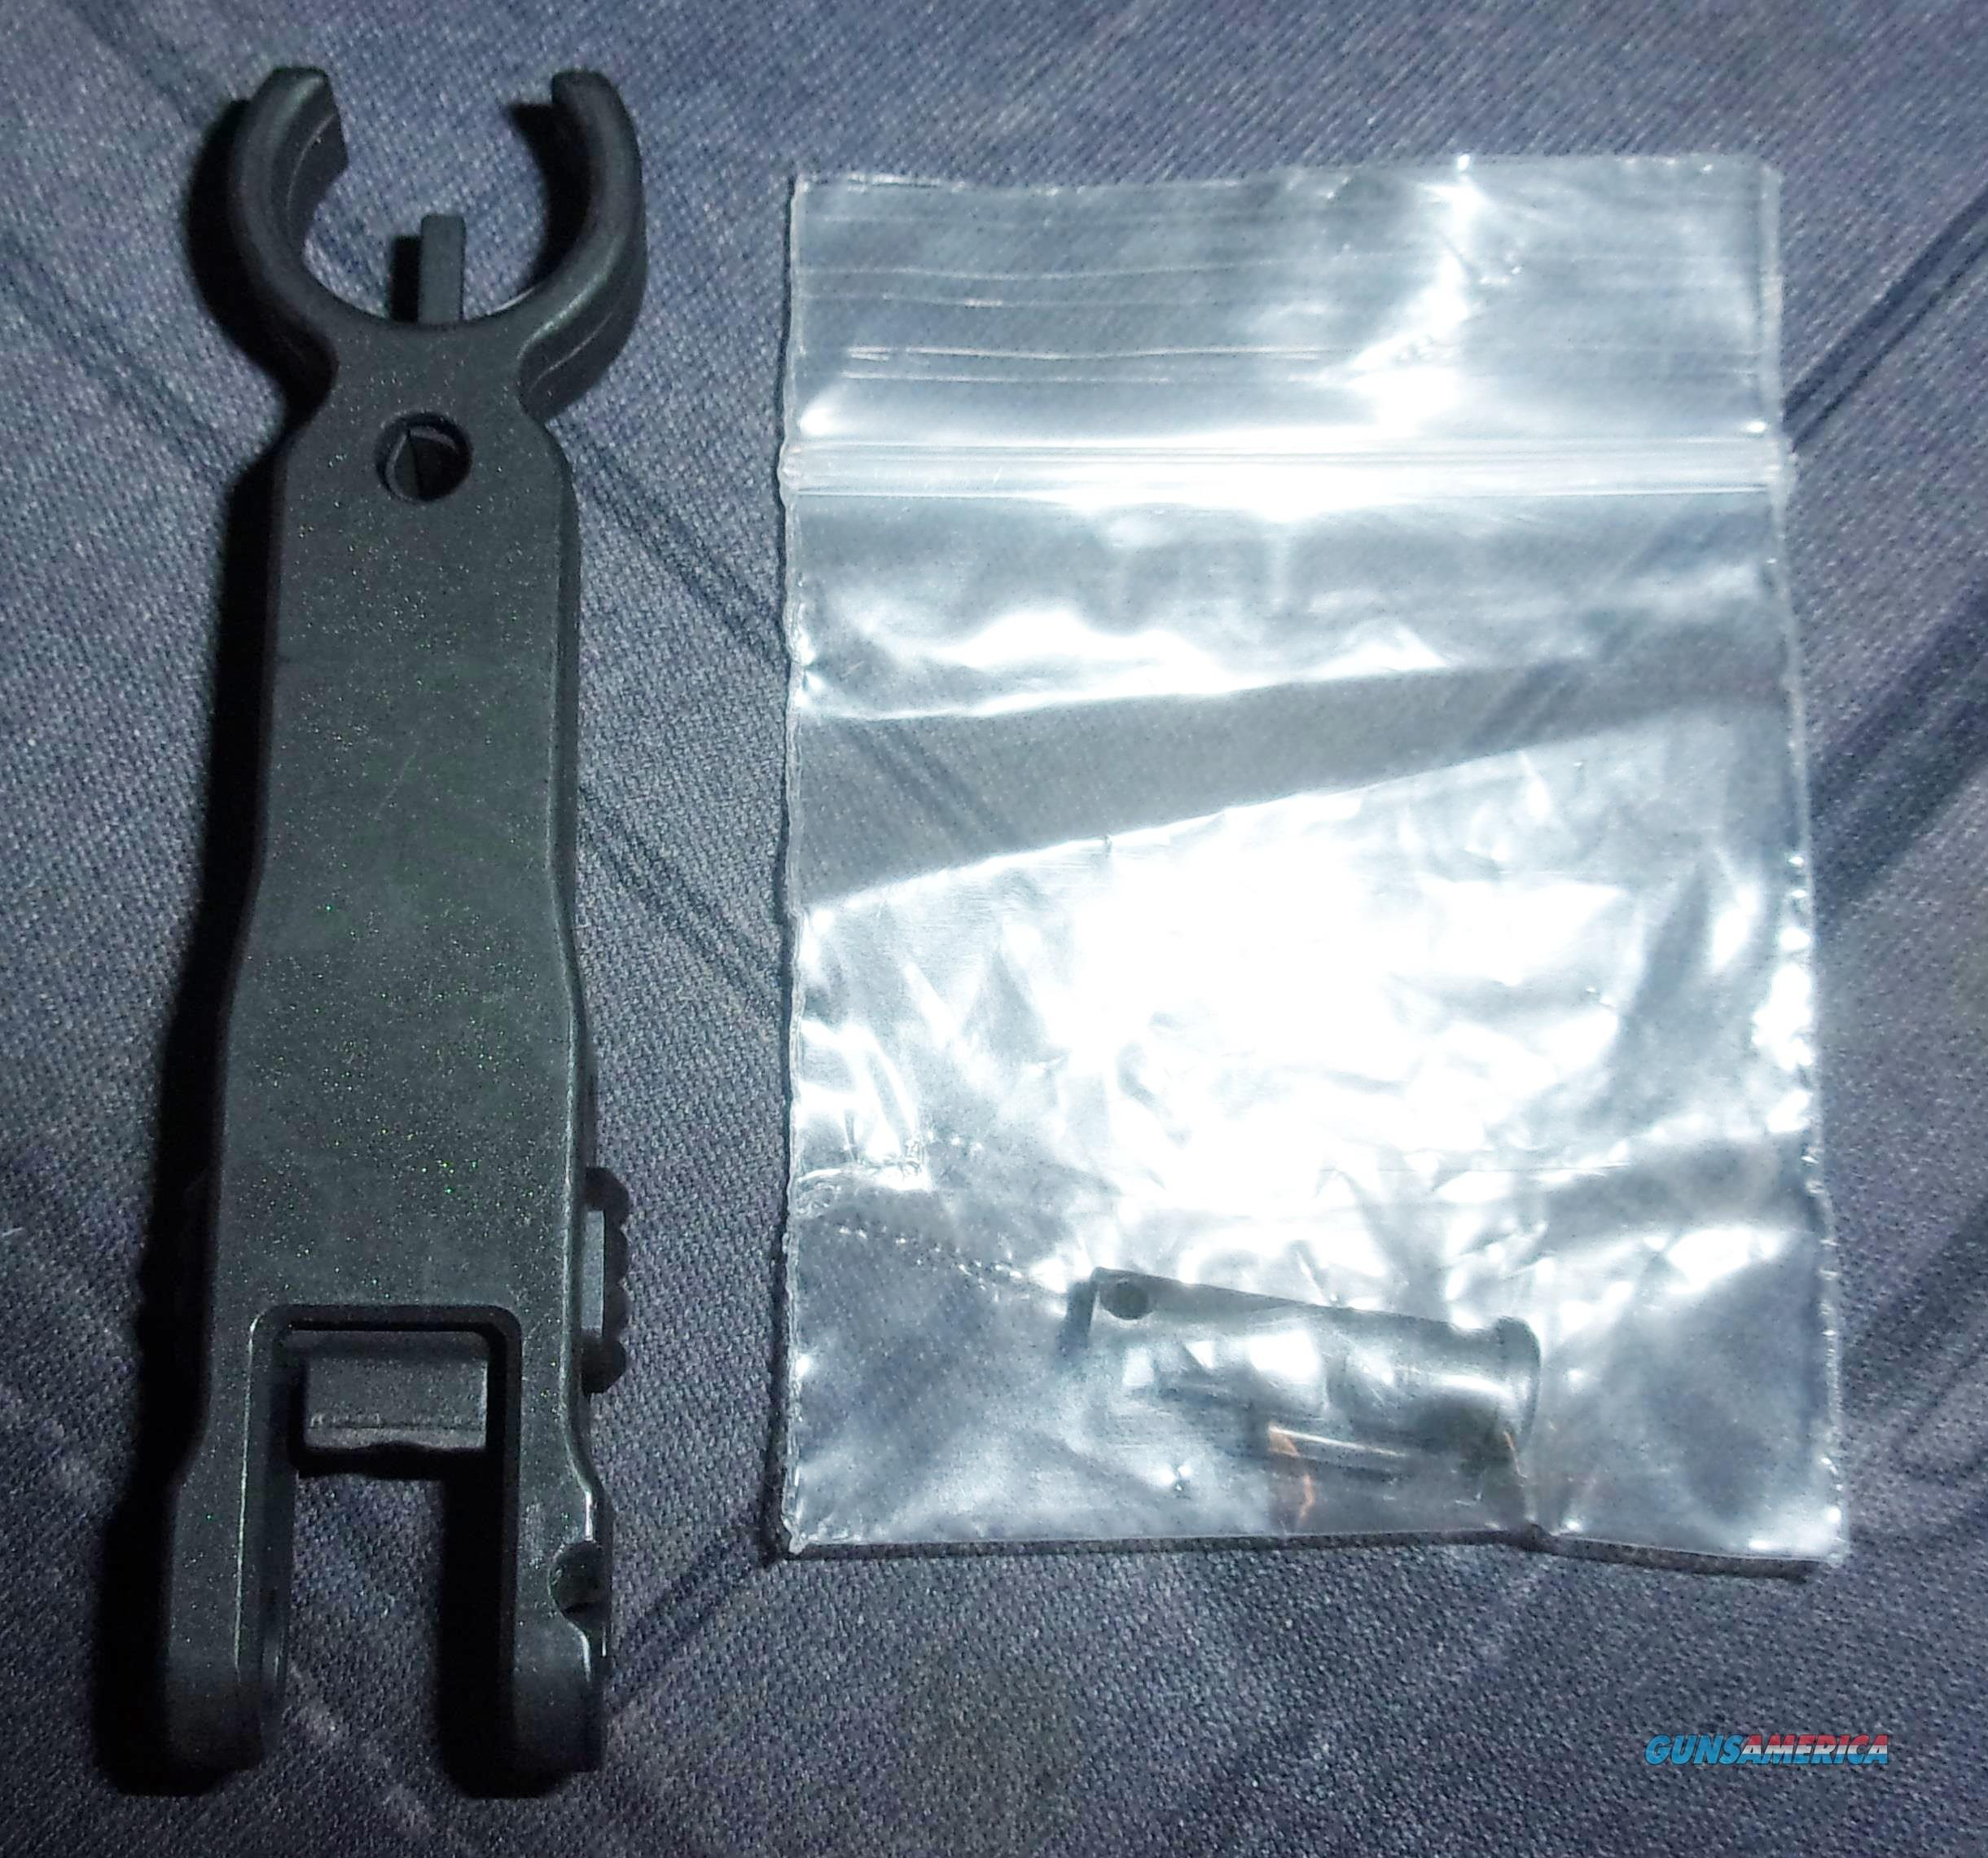 HK 33mm Folding Front Gas Block Sight (416, MR556, MR762)  Non-Guns > Gun Parts > Rifle/Accuracy/Sniper